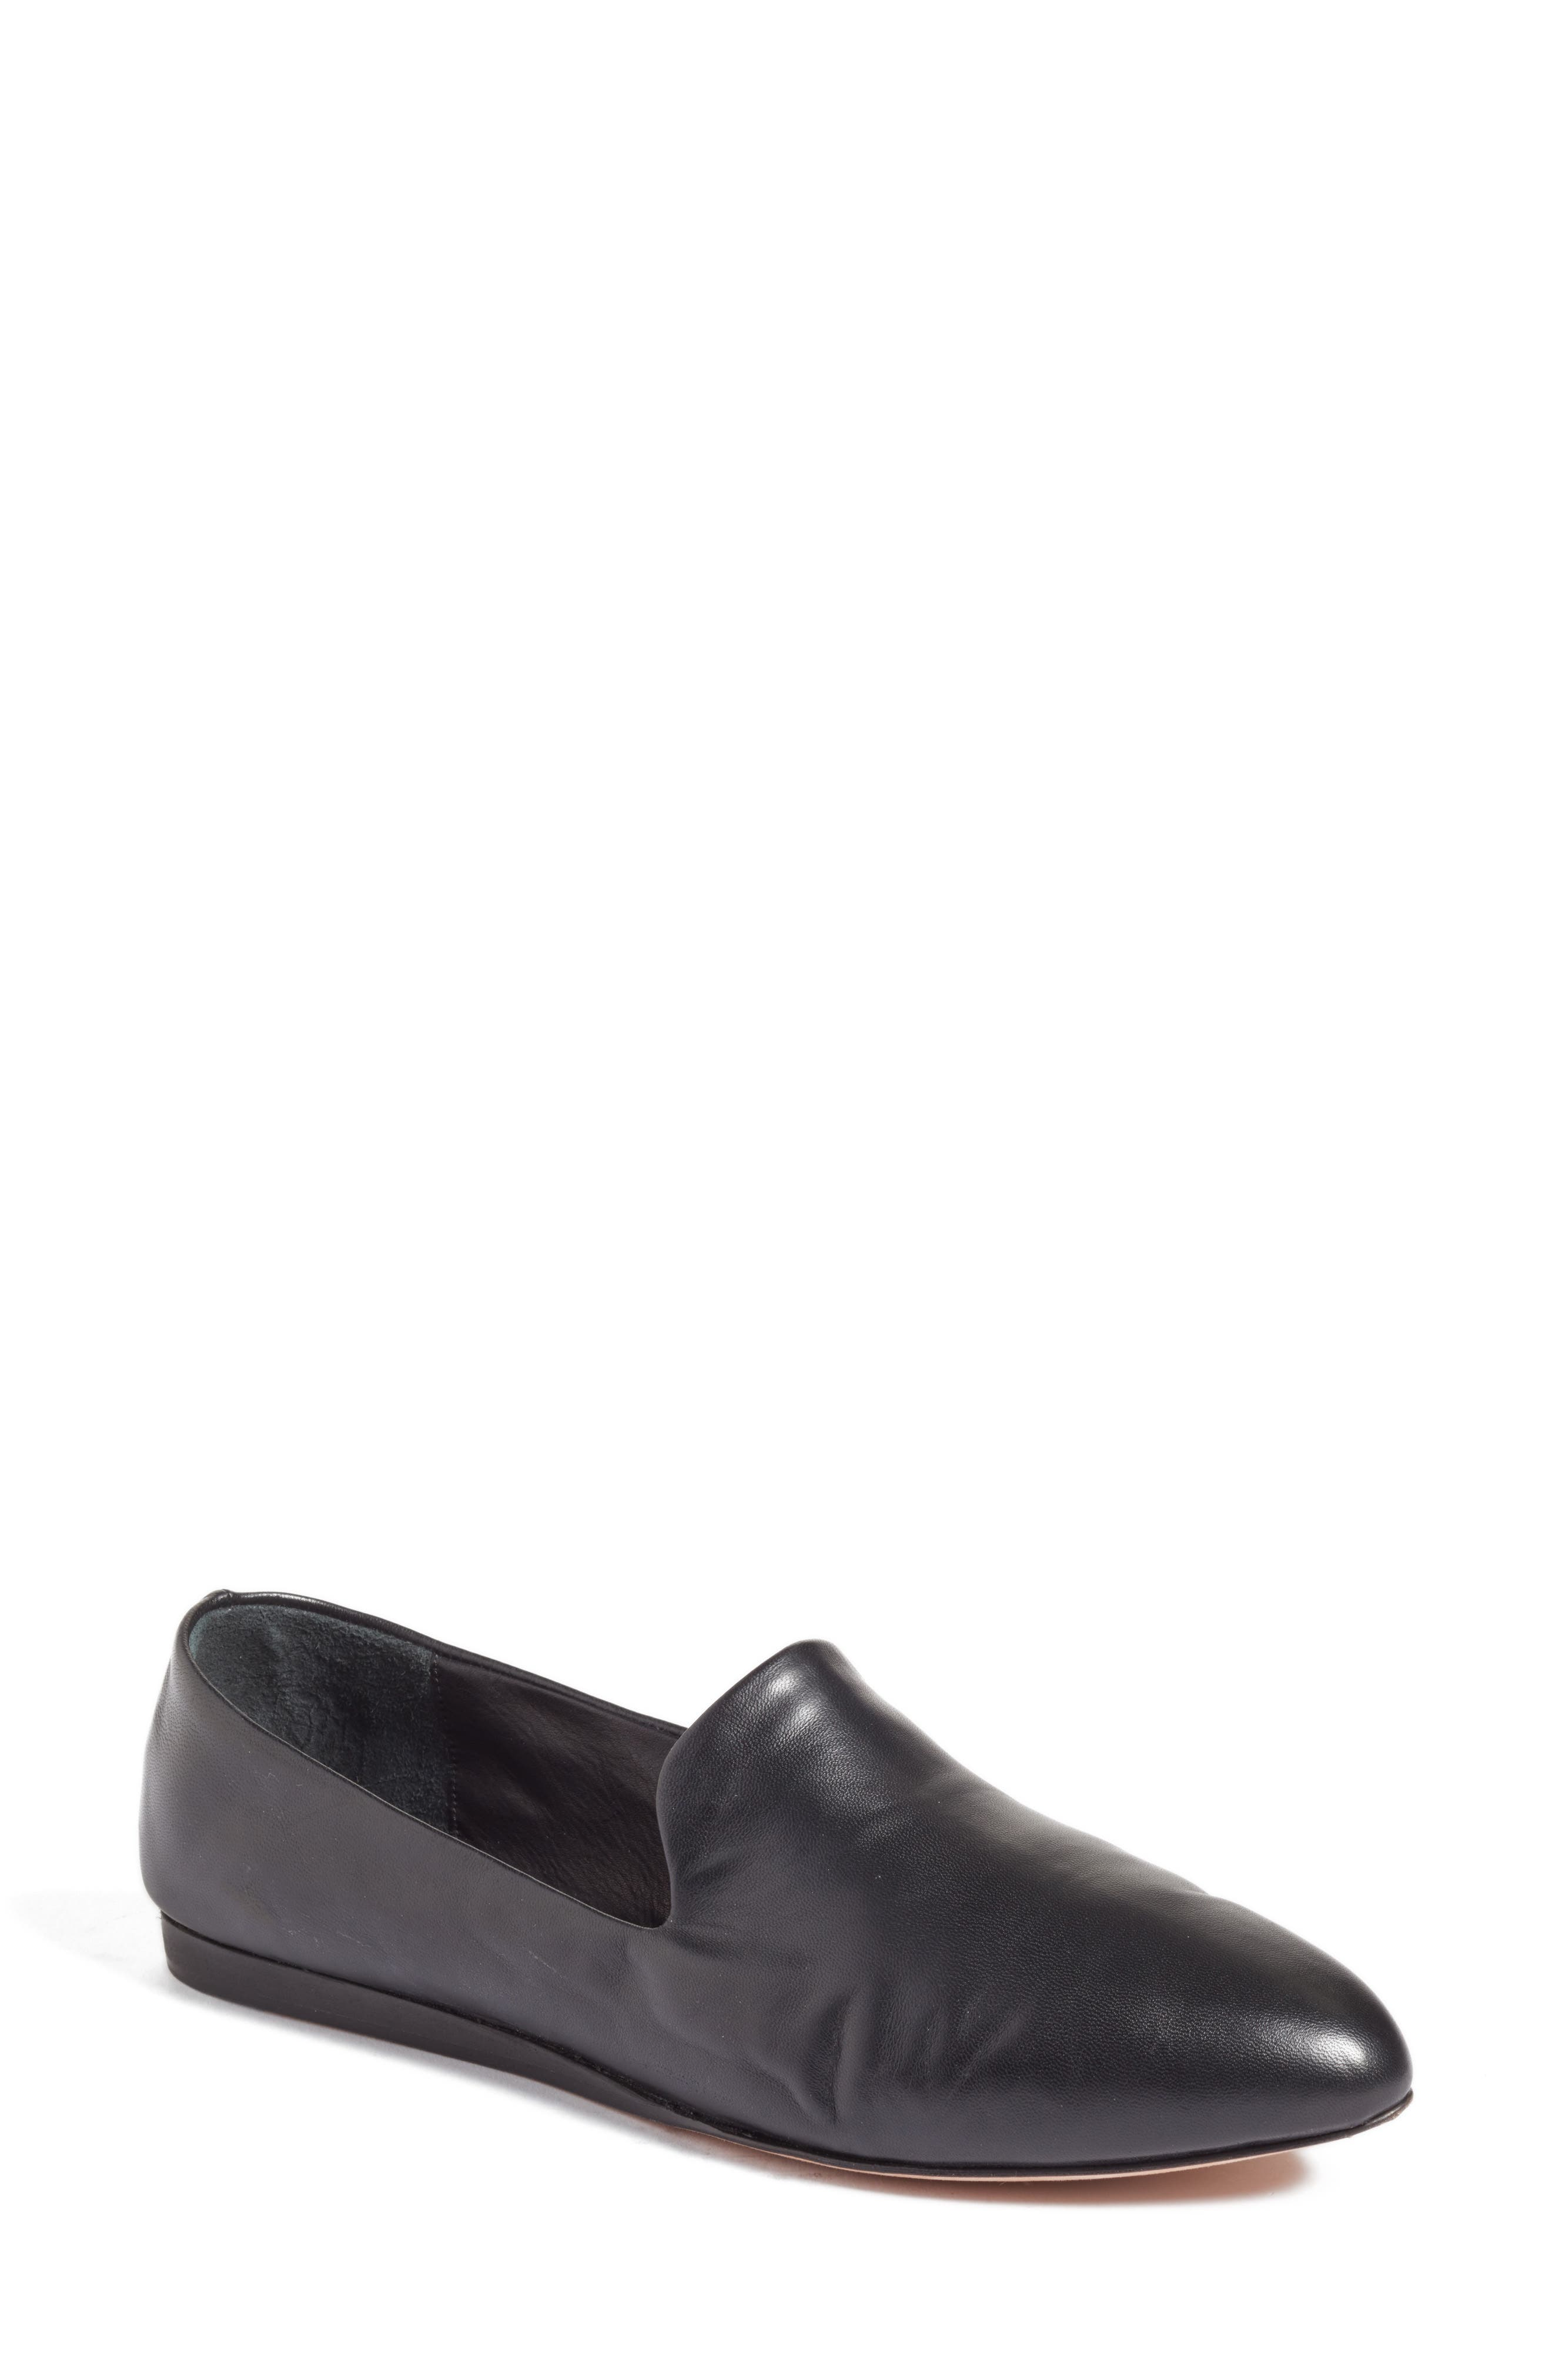 VERONICA BEARD Griffin Pointy Toe Loafer, Main, color, 001